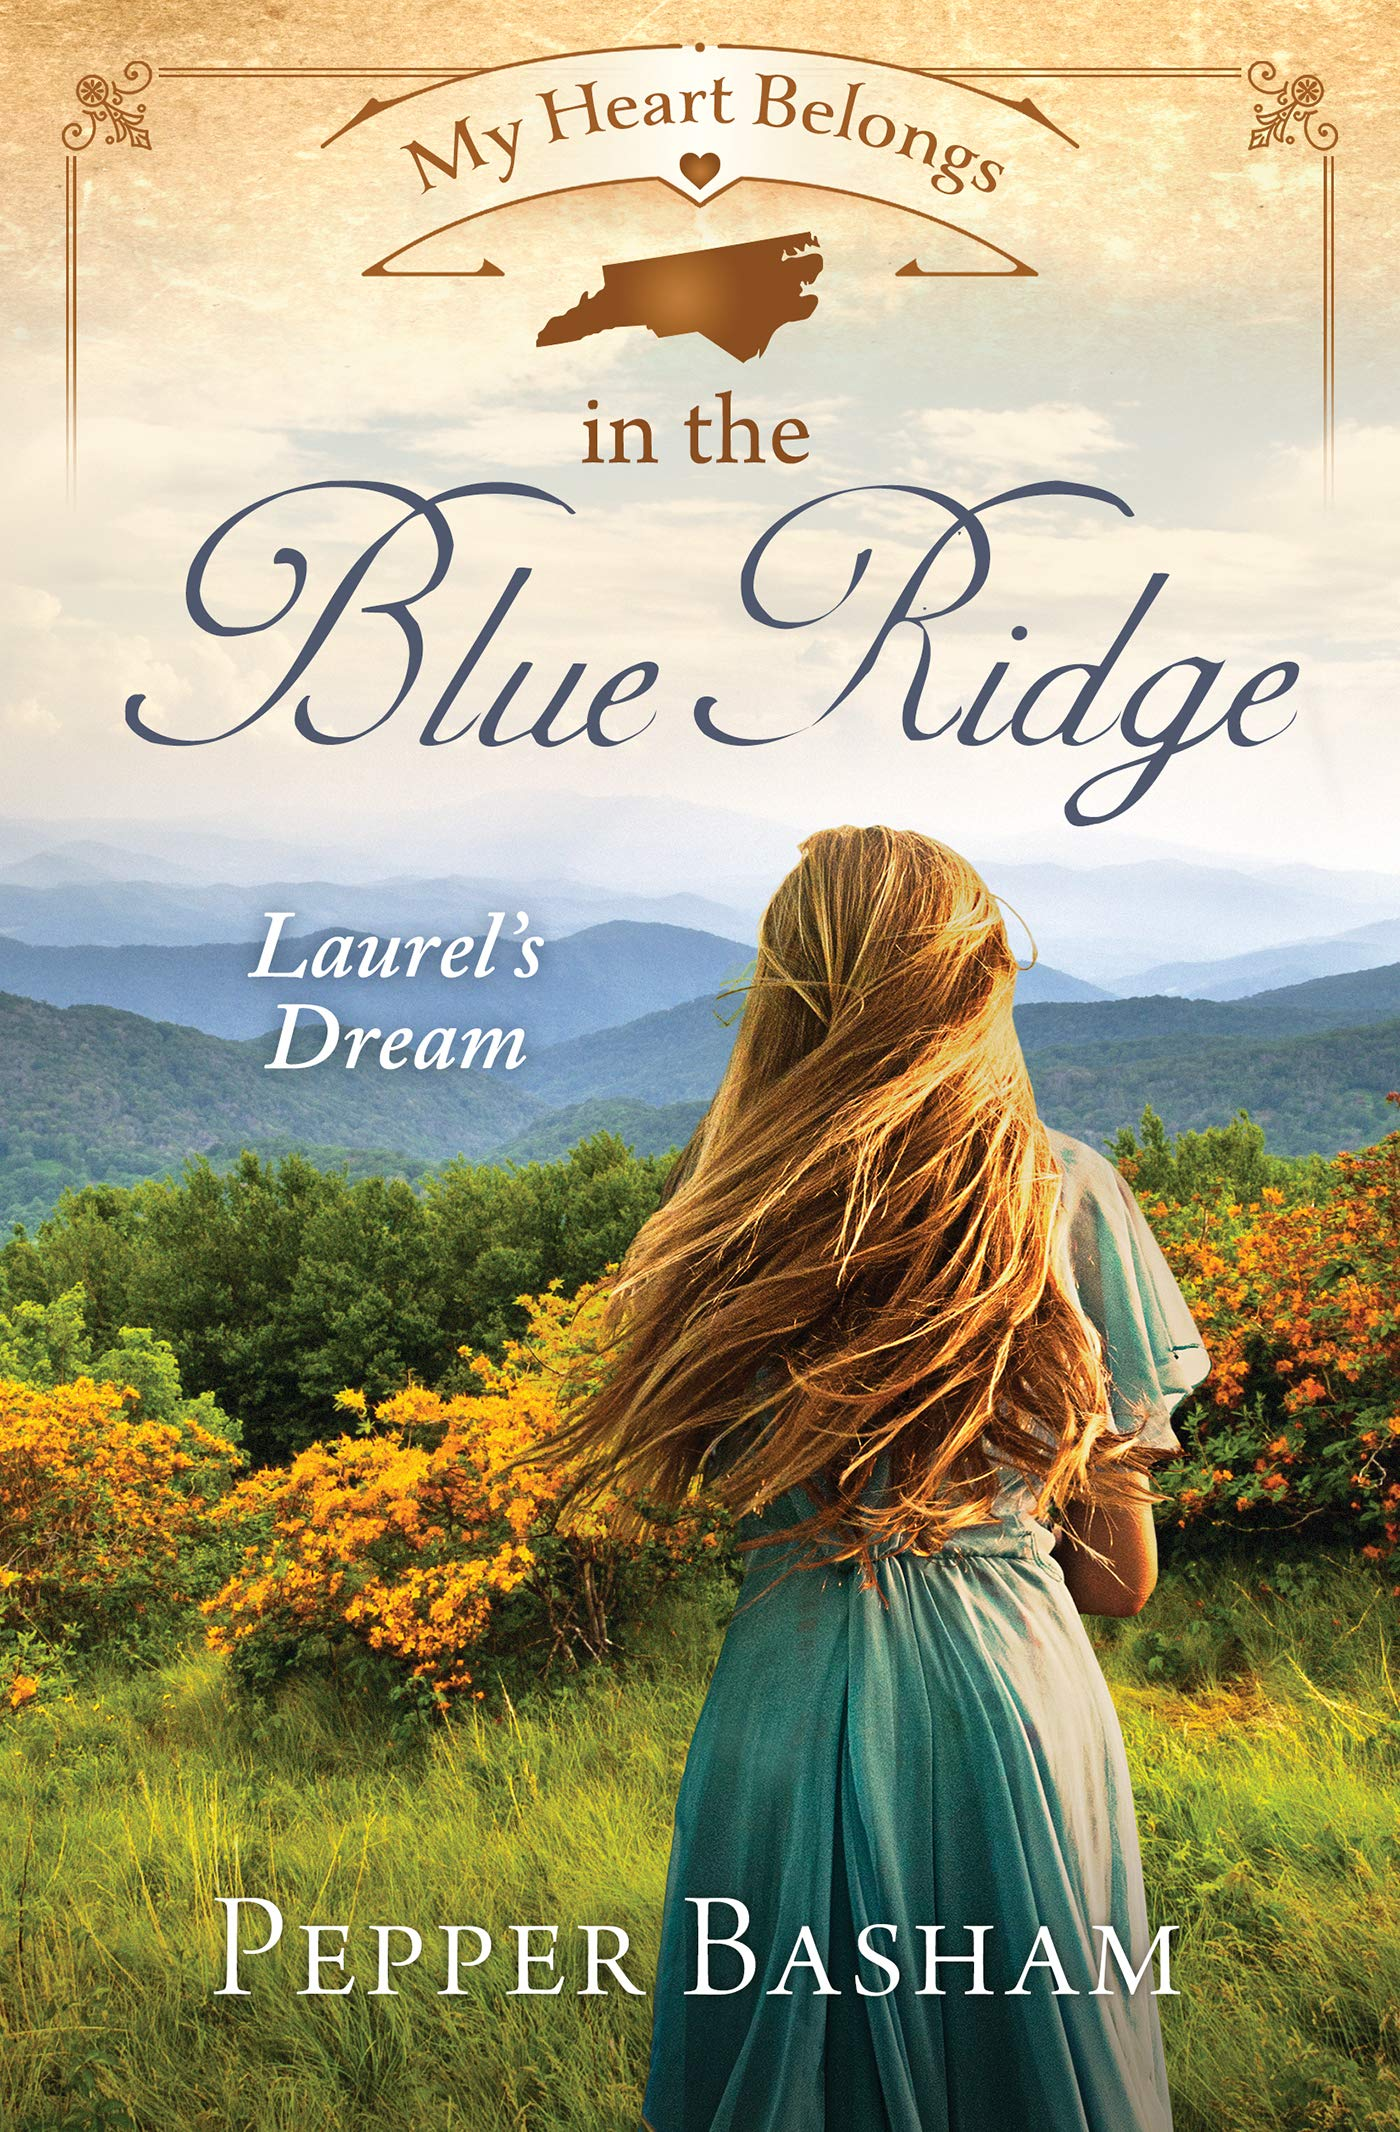 My Heart Belongs in the Blue Ridge: Laurel's Dream {A Book Review}